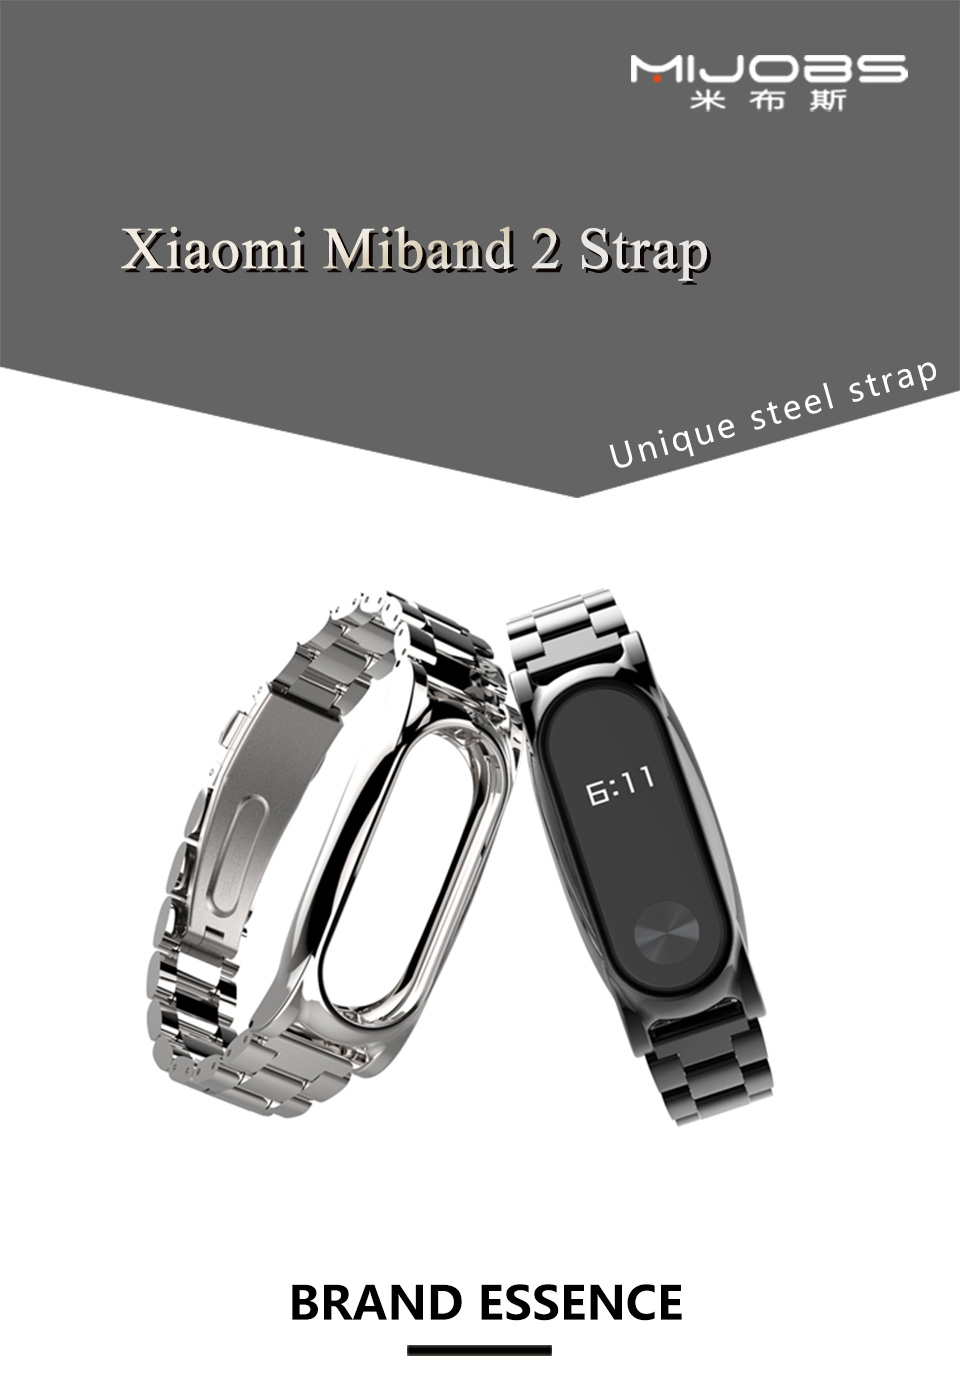 Original Stainless Steel Metal Plus Fitbit Free tool Xiaomi miband 2 Smart Bracelet Replacement Fitness Tracker mi Accessories 3